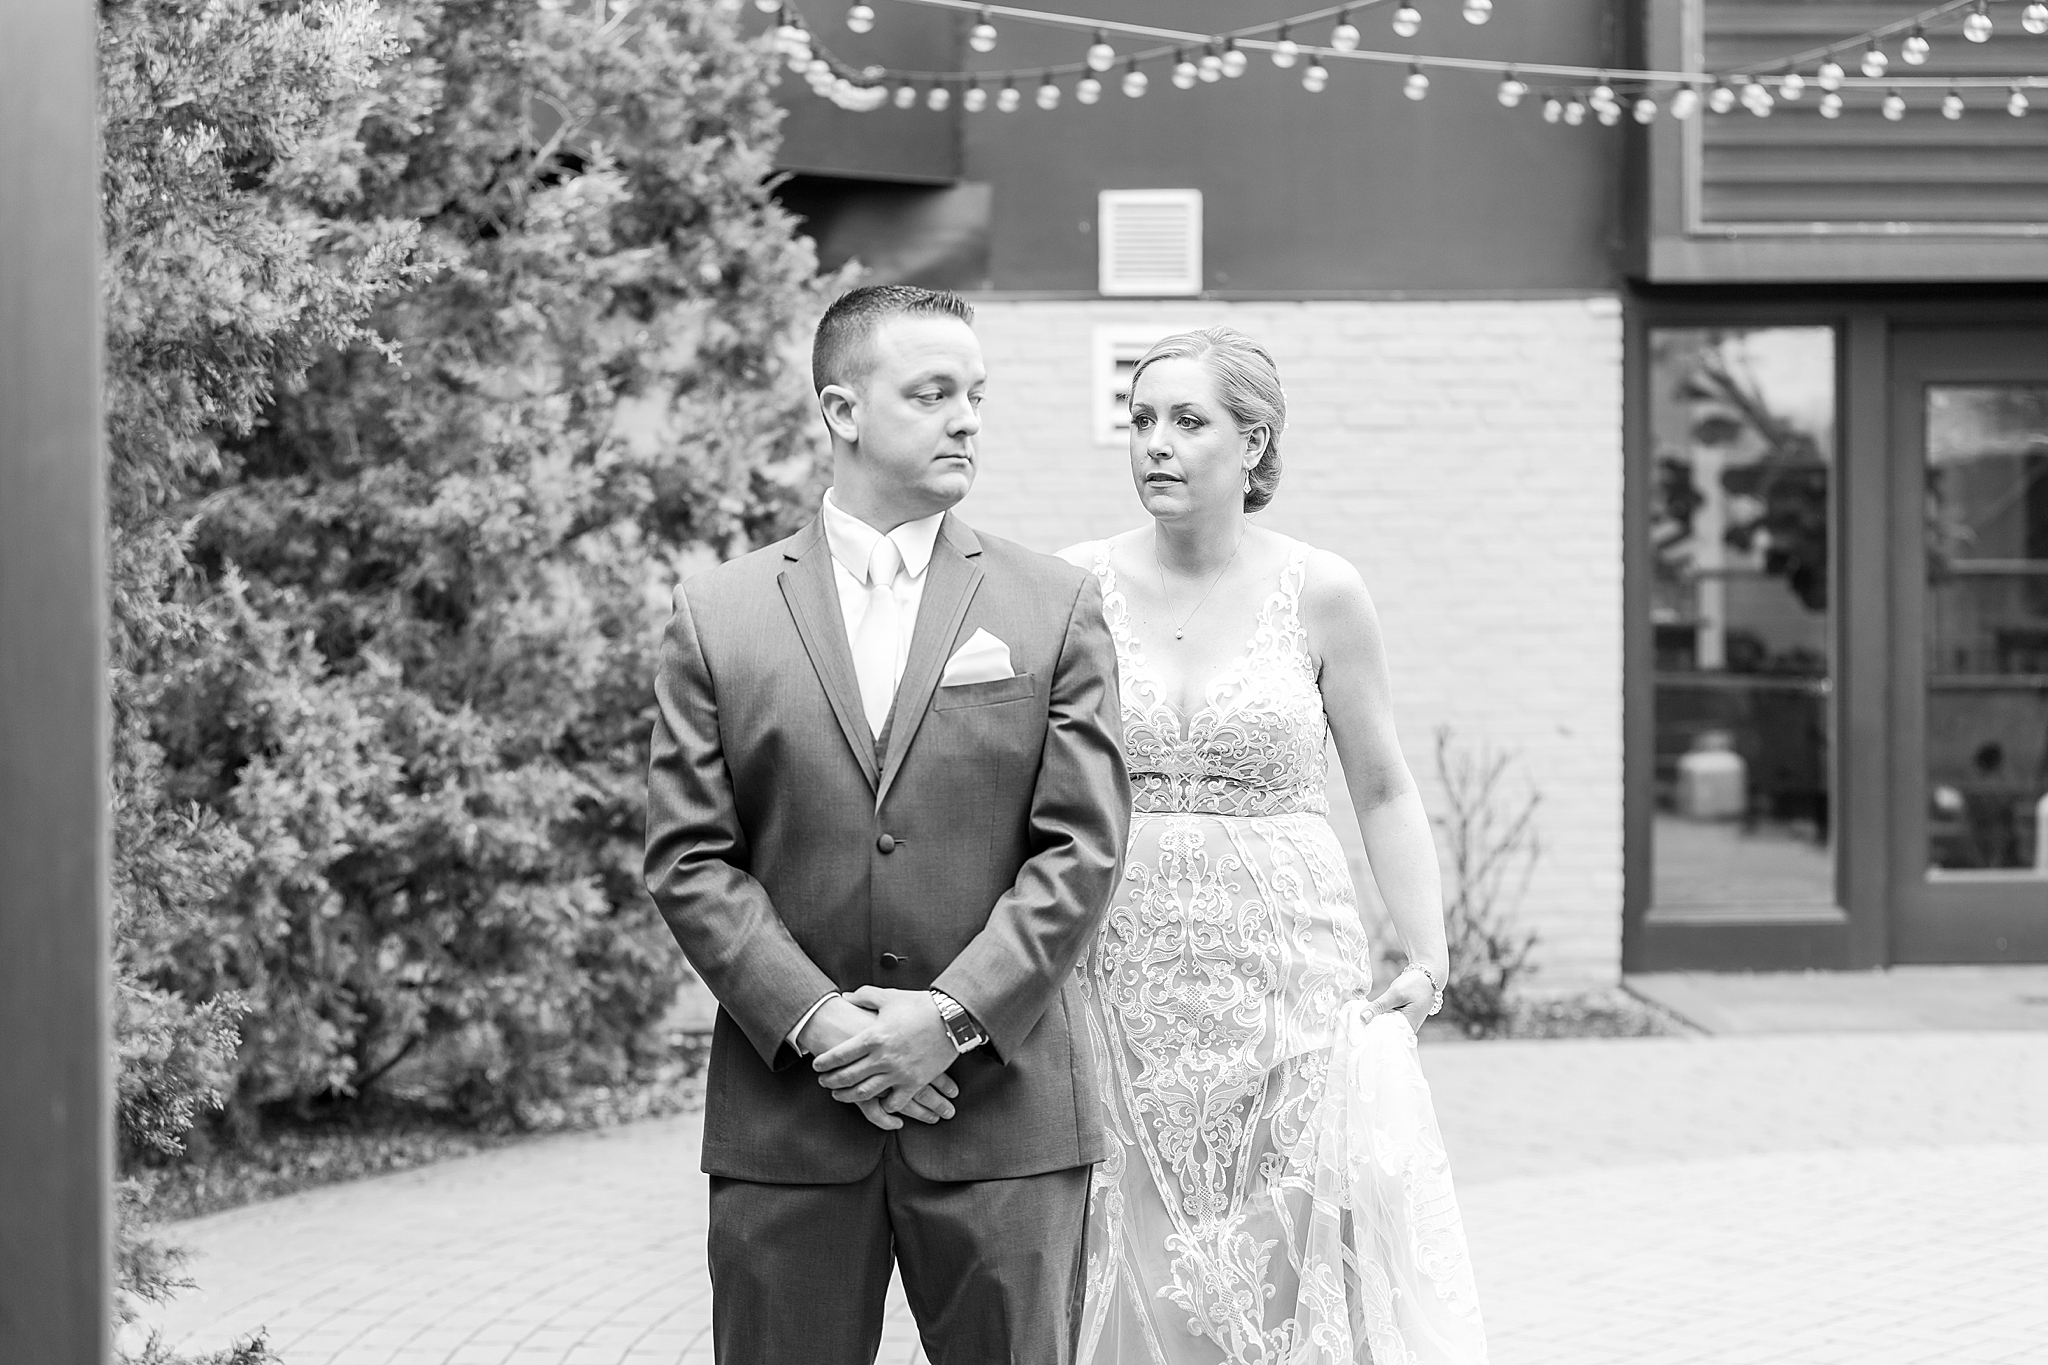 modern-romantic-wedding-photography-at-webers-in-ann-arbor-michigan-by-courtney-carolyn-photography_0019.jpg